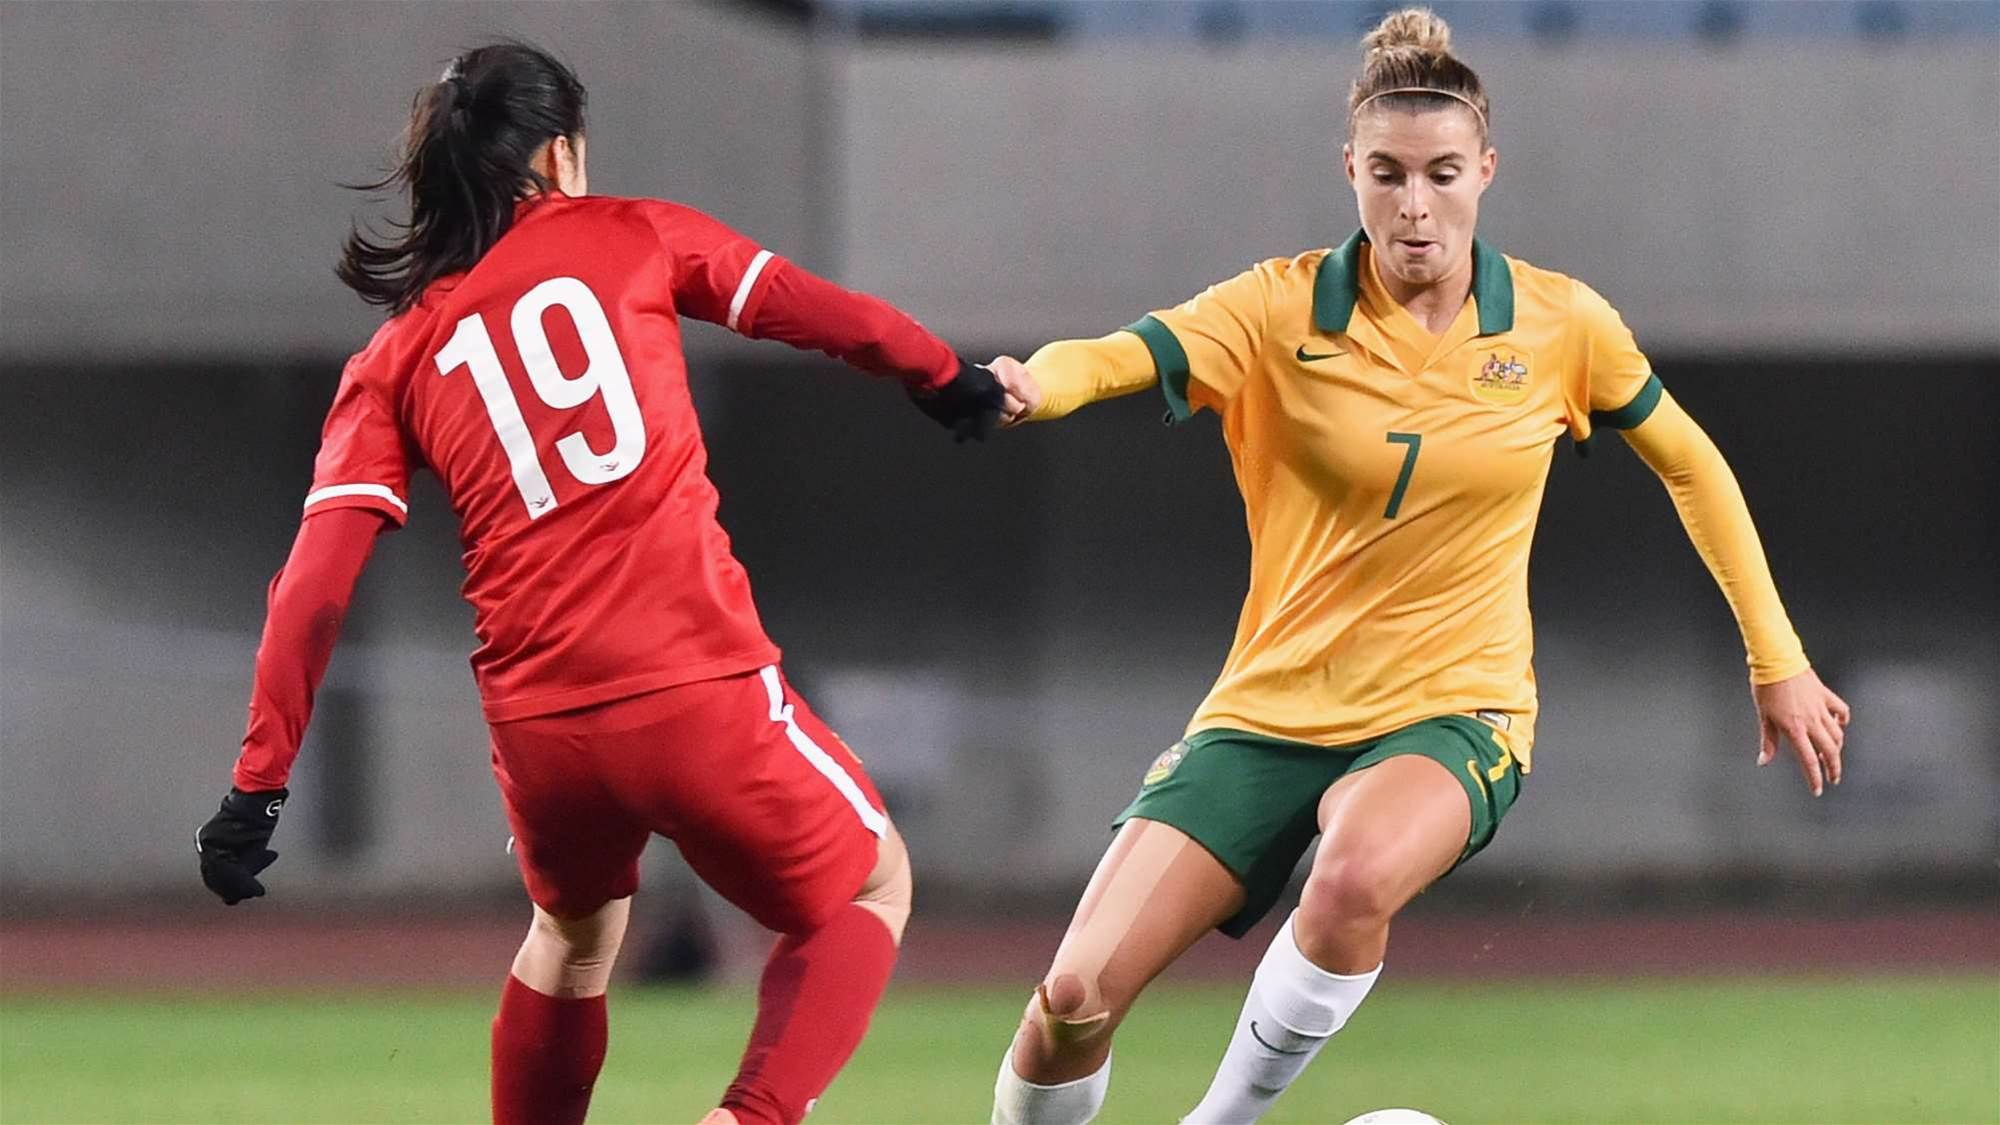 It's back to business for Catley